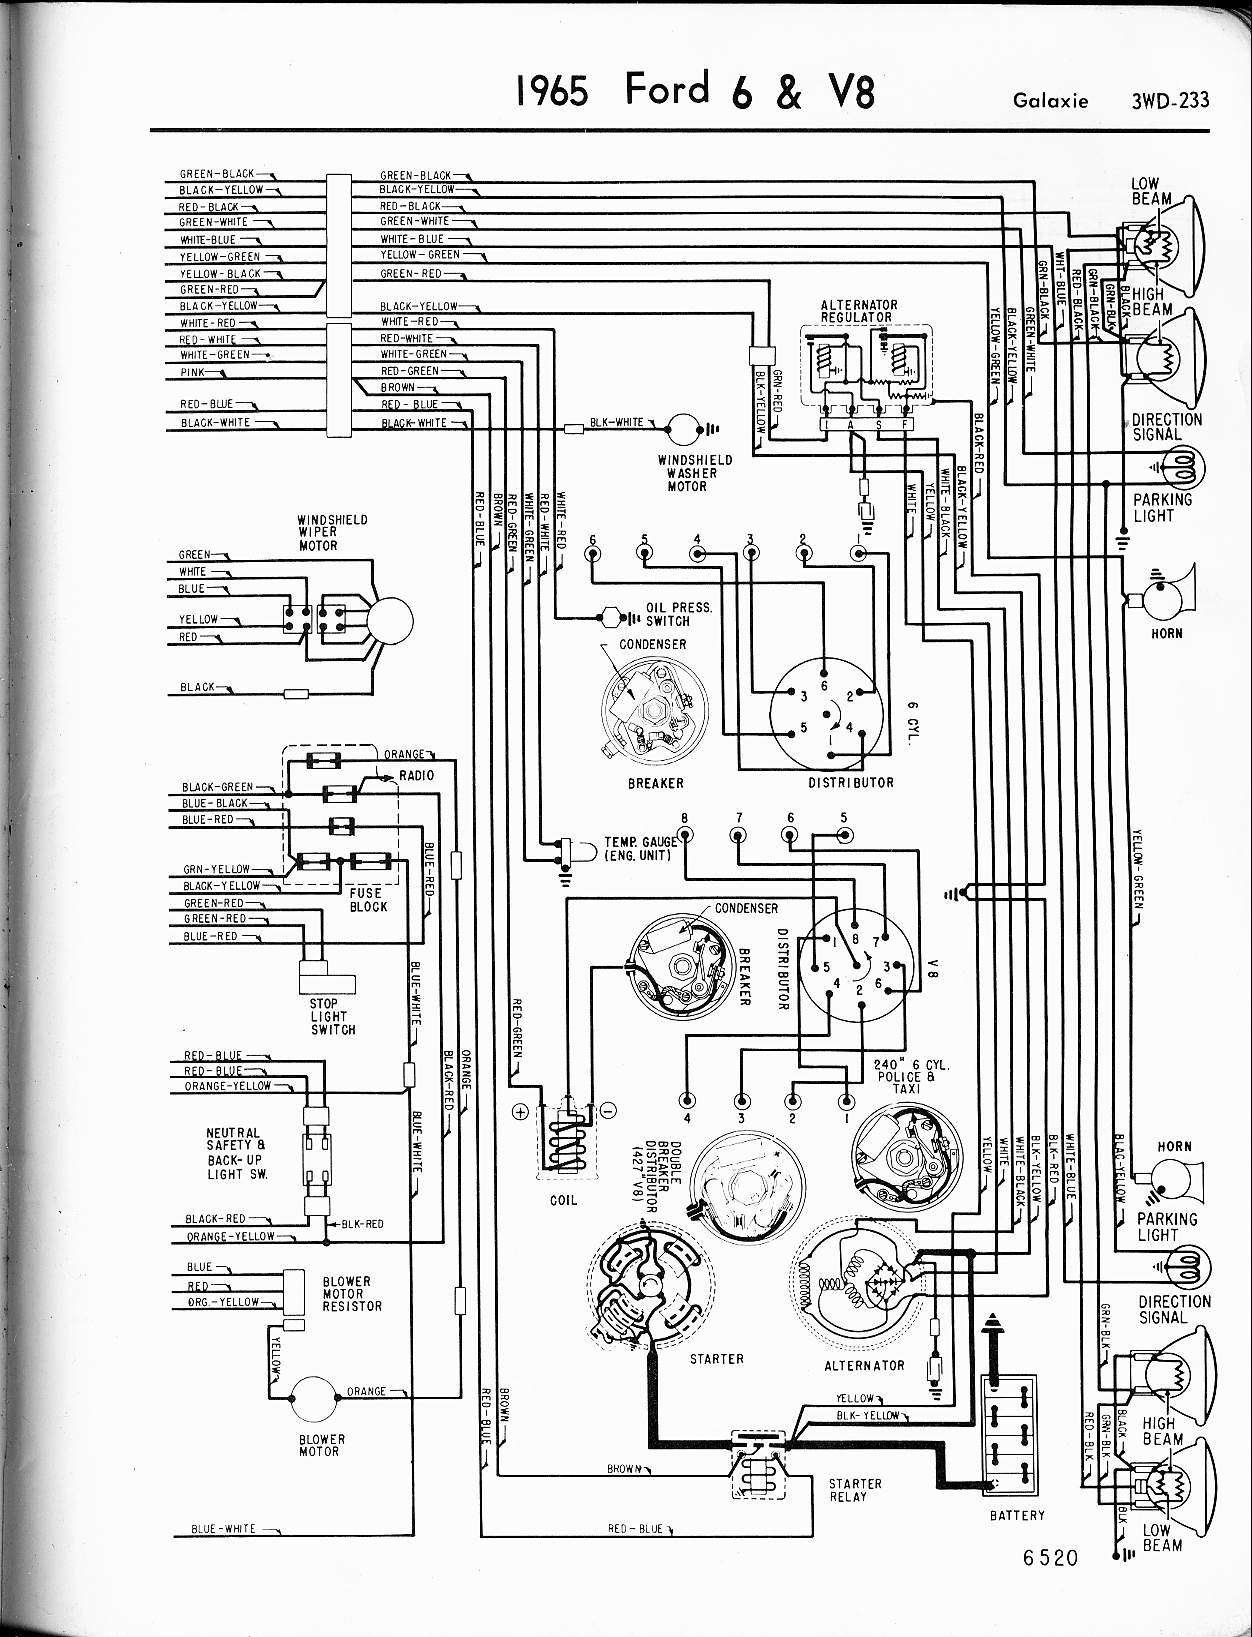 radio wiring harness diagram with Fordindex on 88 Rx7 Wiring Diagram Rx7club additionally 1994 Camaro Wiring Diagram additionally Harness Racing Stencils as well Fordindex furthermore 1967 Mustang Wiring And Vacuum Diagrams.